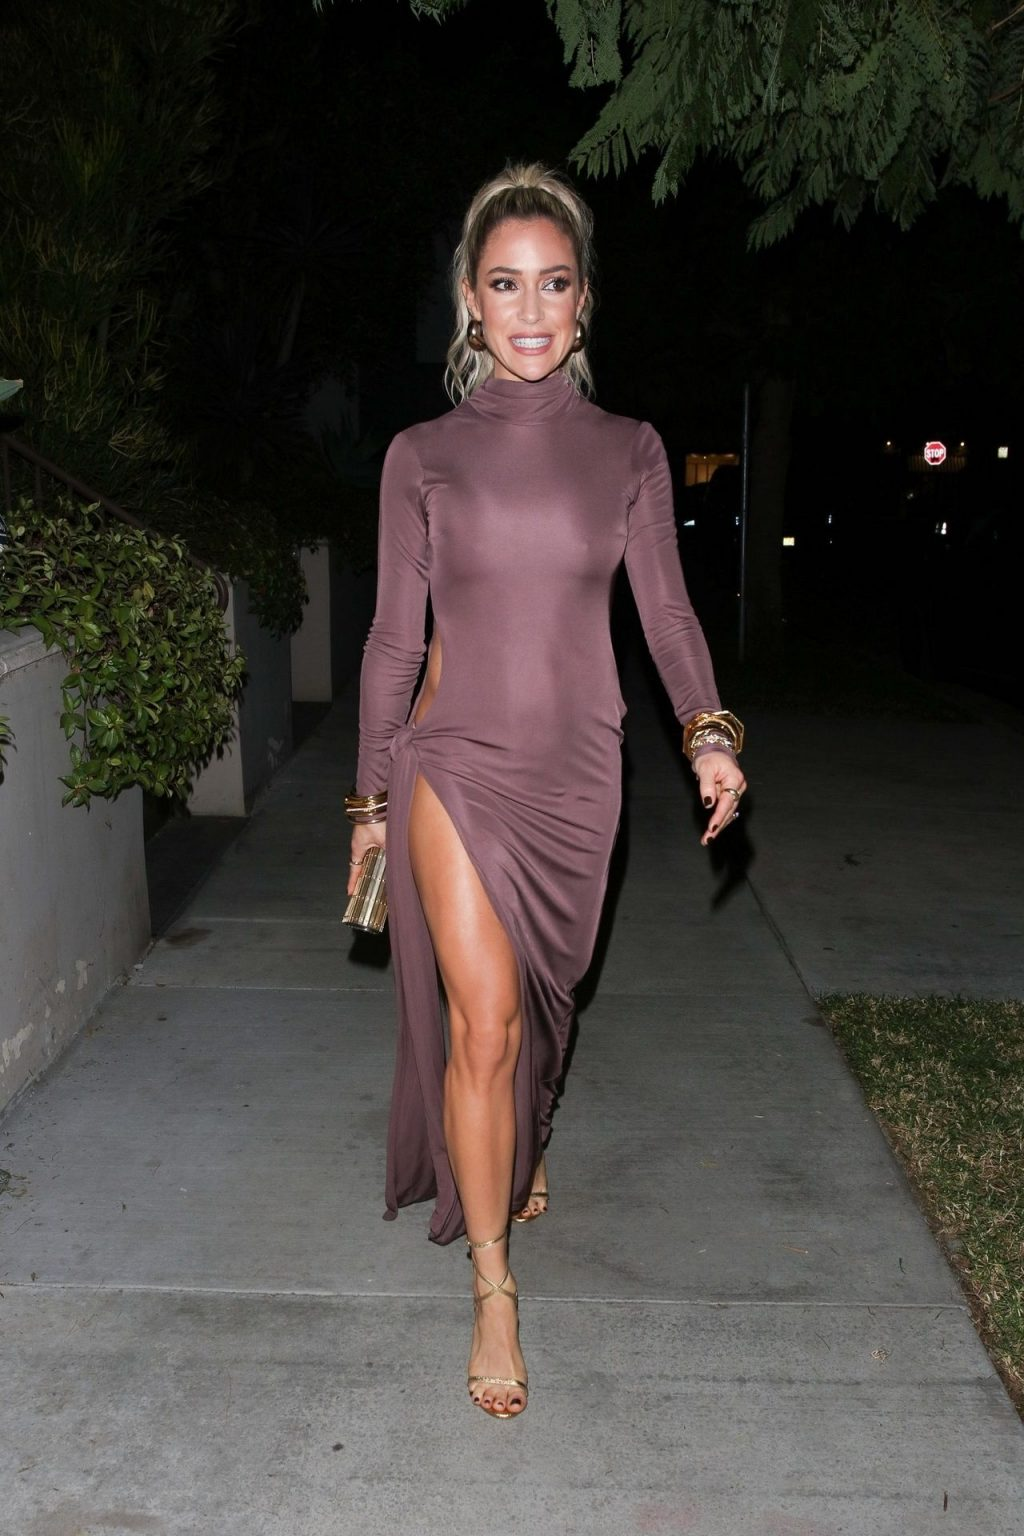 Kristin Cavallari Shows Off Her Stunning Legs as She Heads to the AMA's (42 Photos)